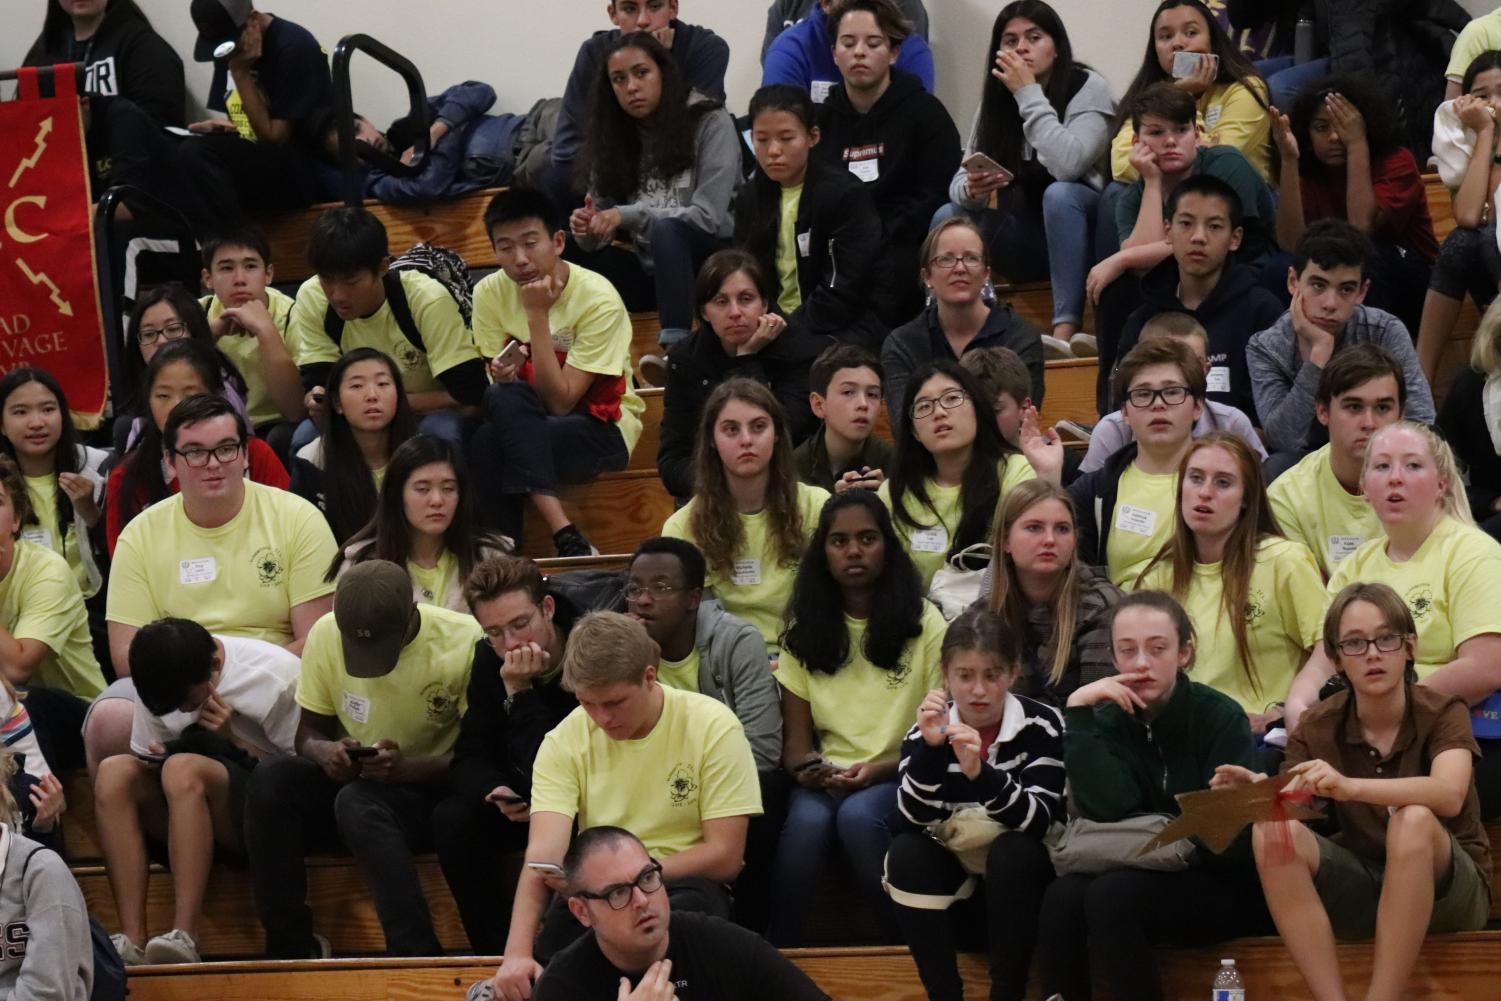 Latin students attend the general assembly after SCRAM.